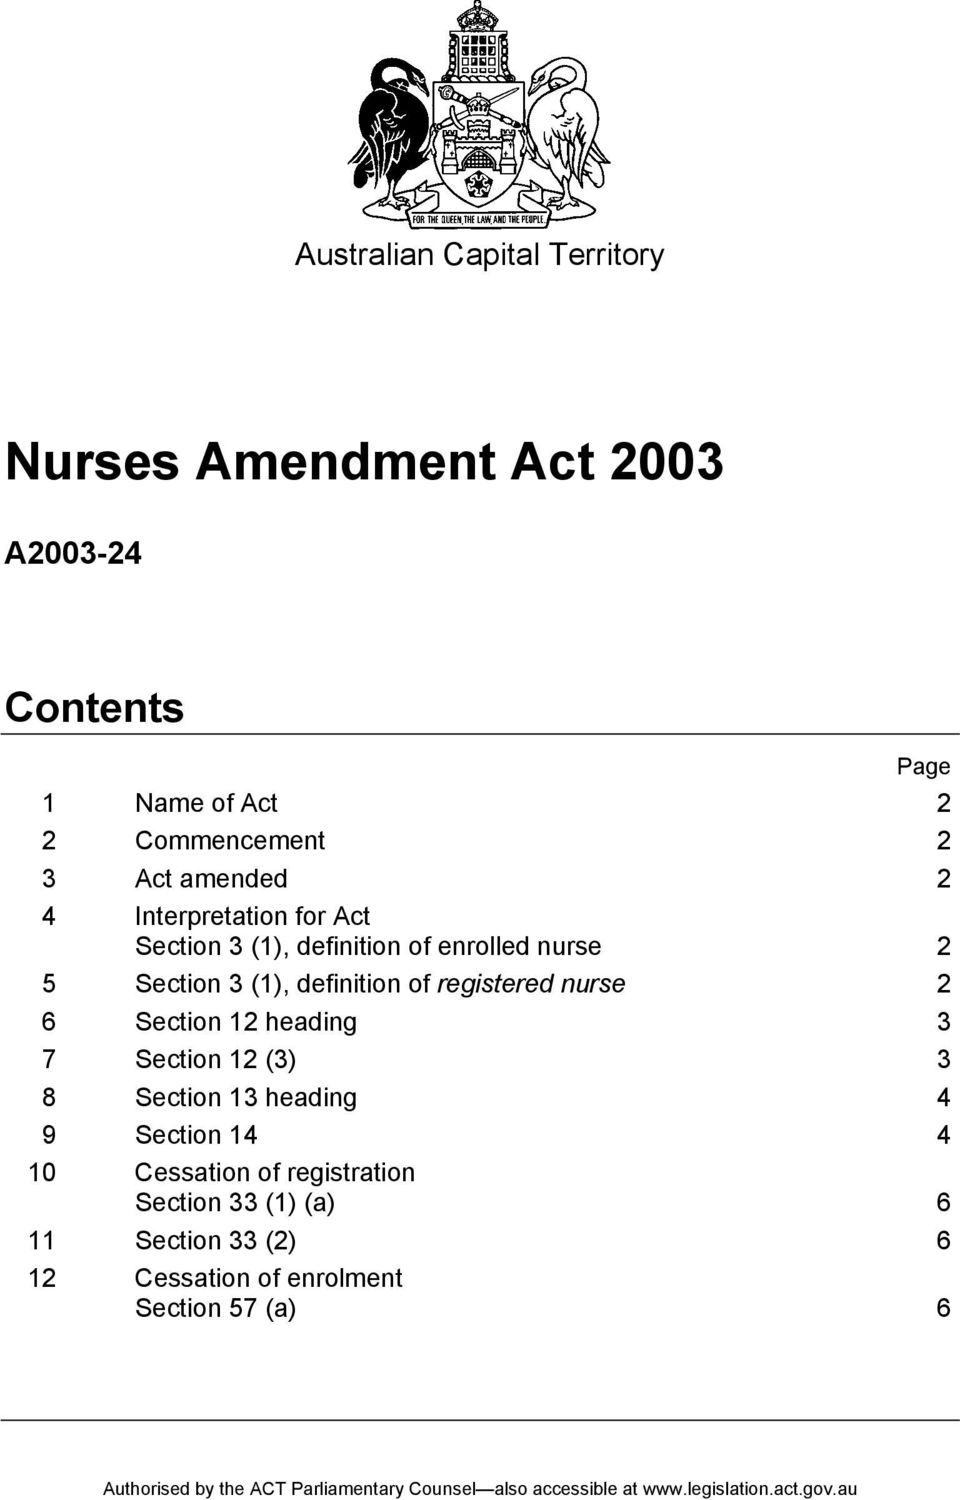 definition of registered nurse 2 6 Section 12 heading 3 7 Section 12 (3) 3 8 Section 13 heading 4 9 Section